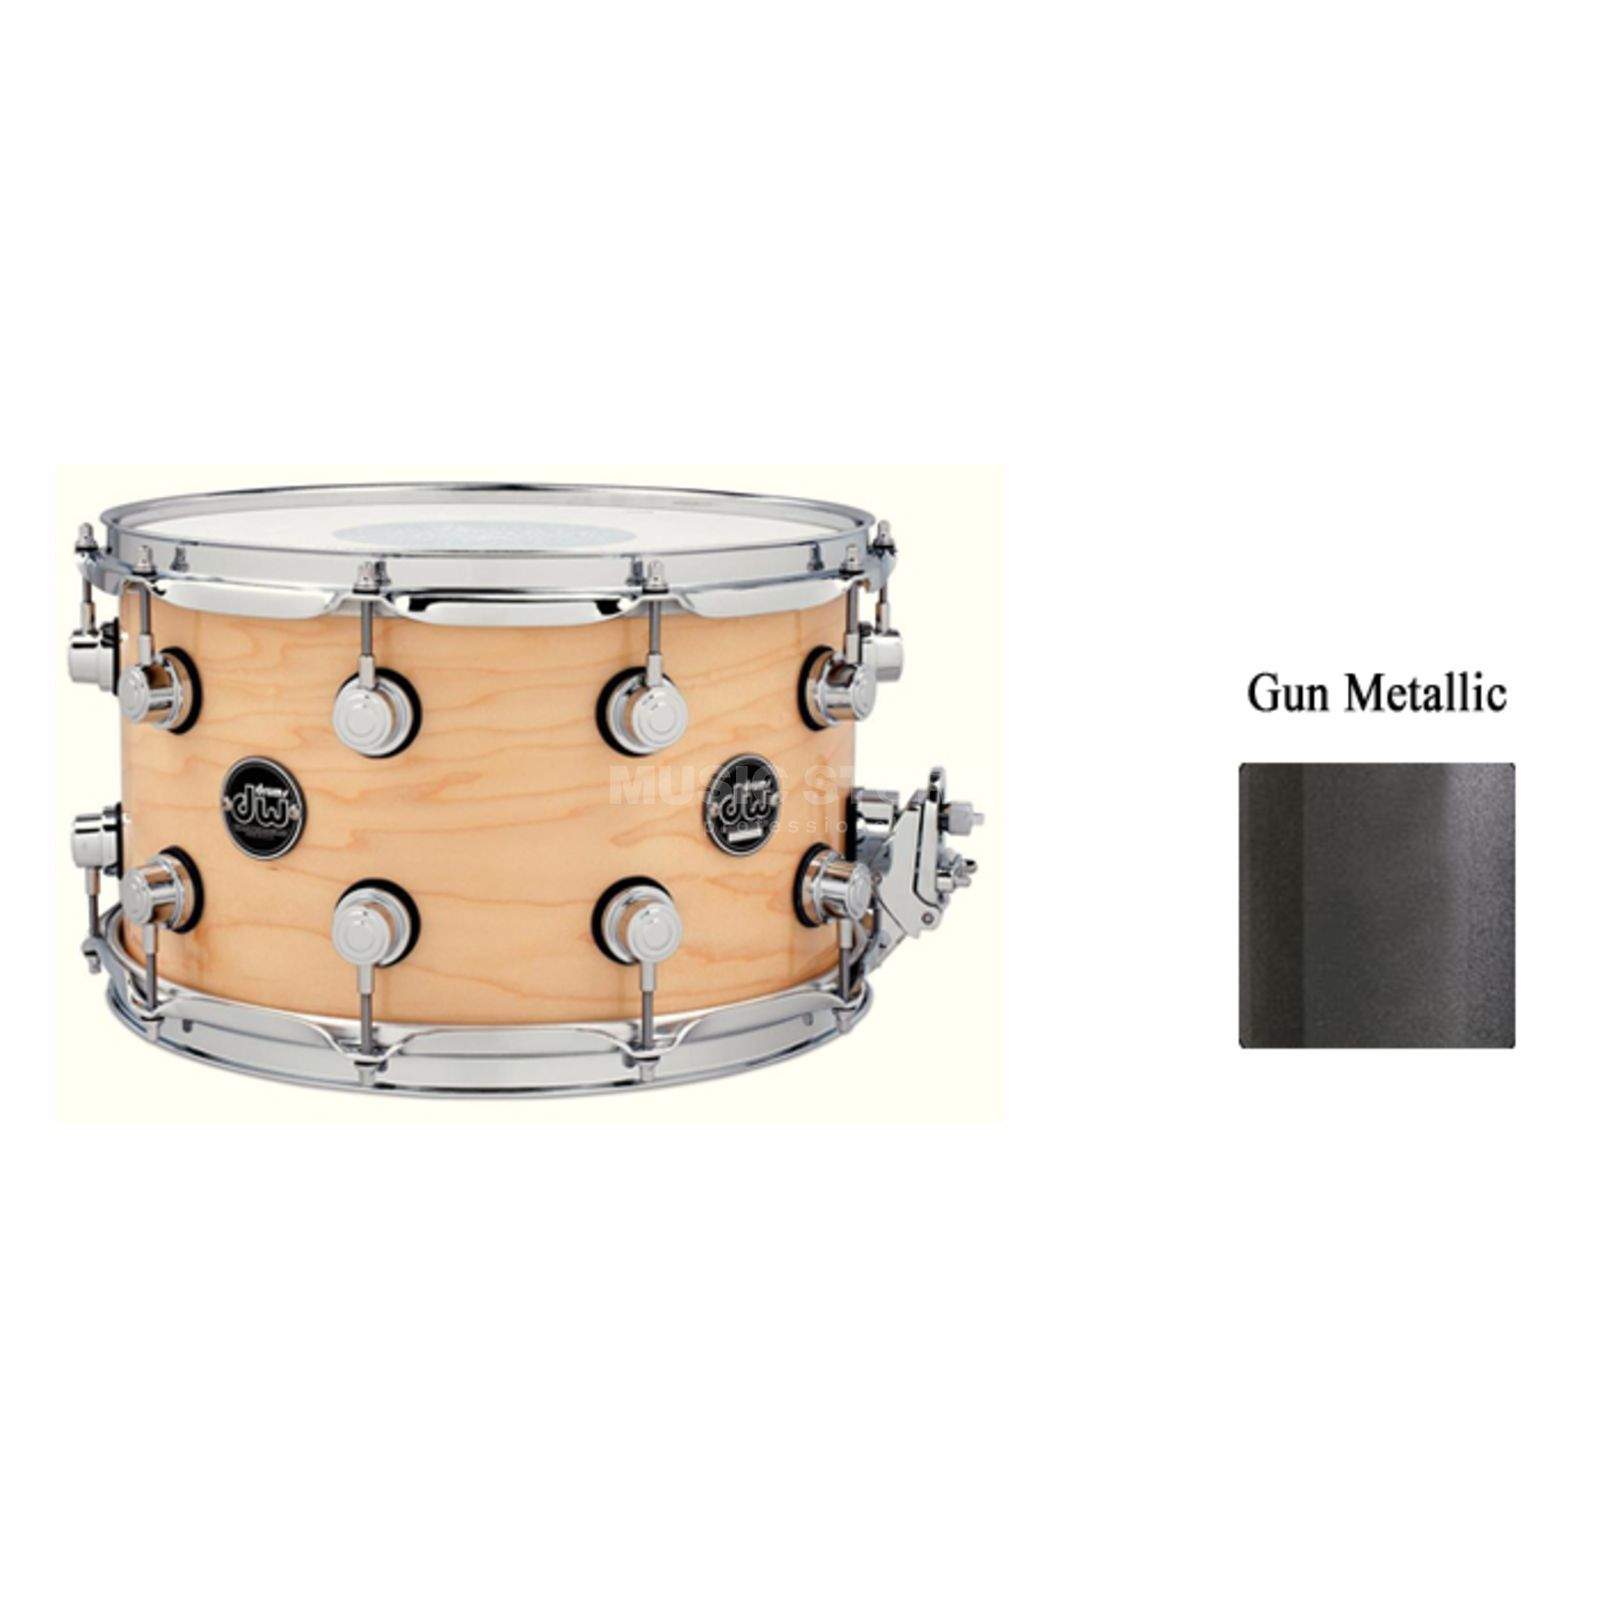 "Drum Workshop Performance Snare 14""x8"", Gun Metal Metallic Produktbild"